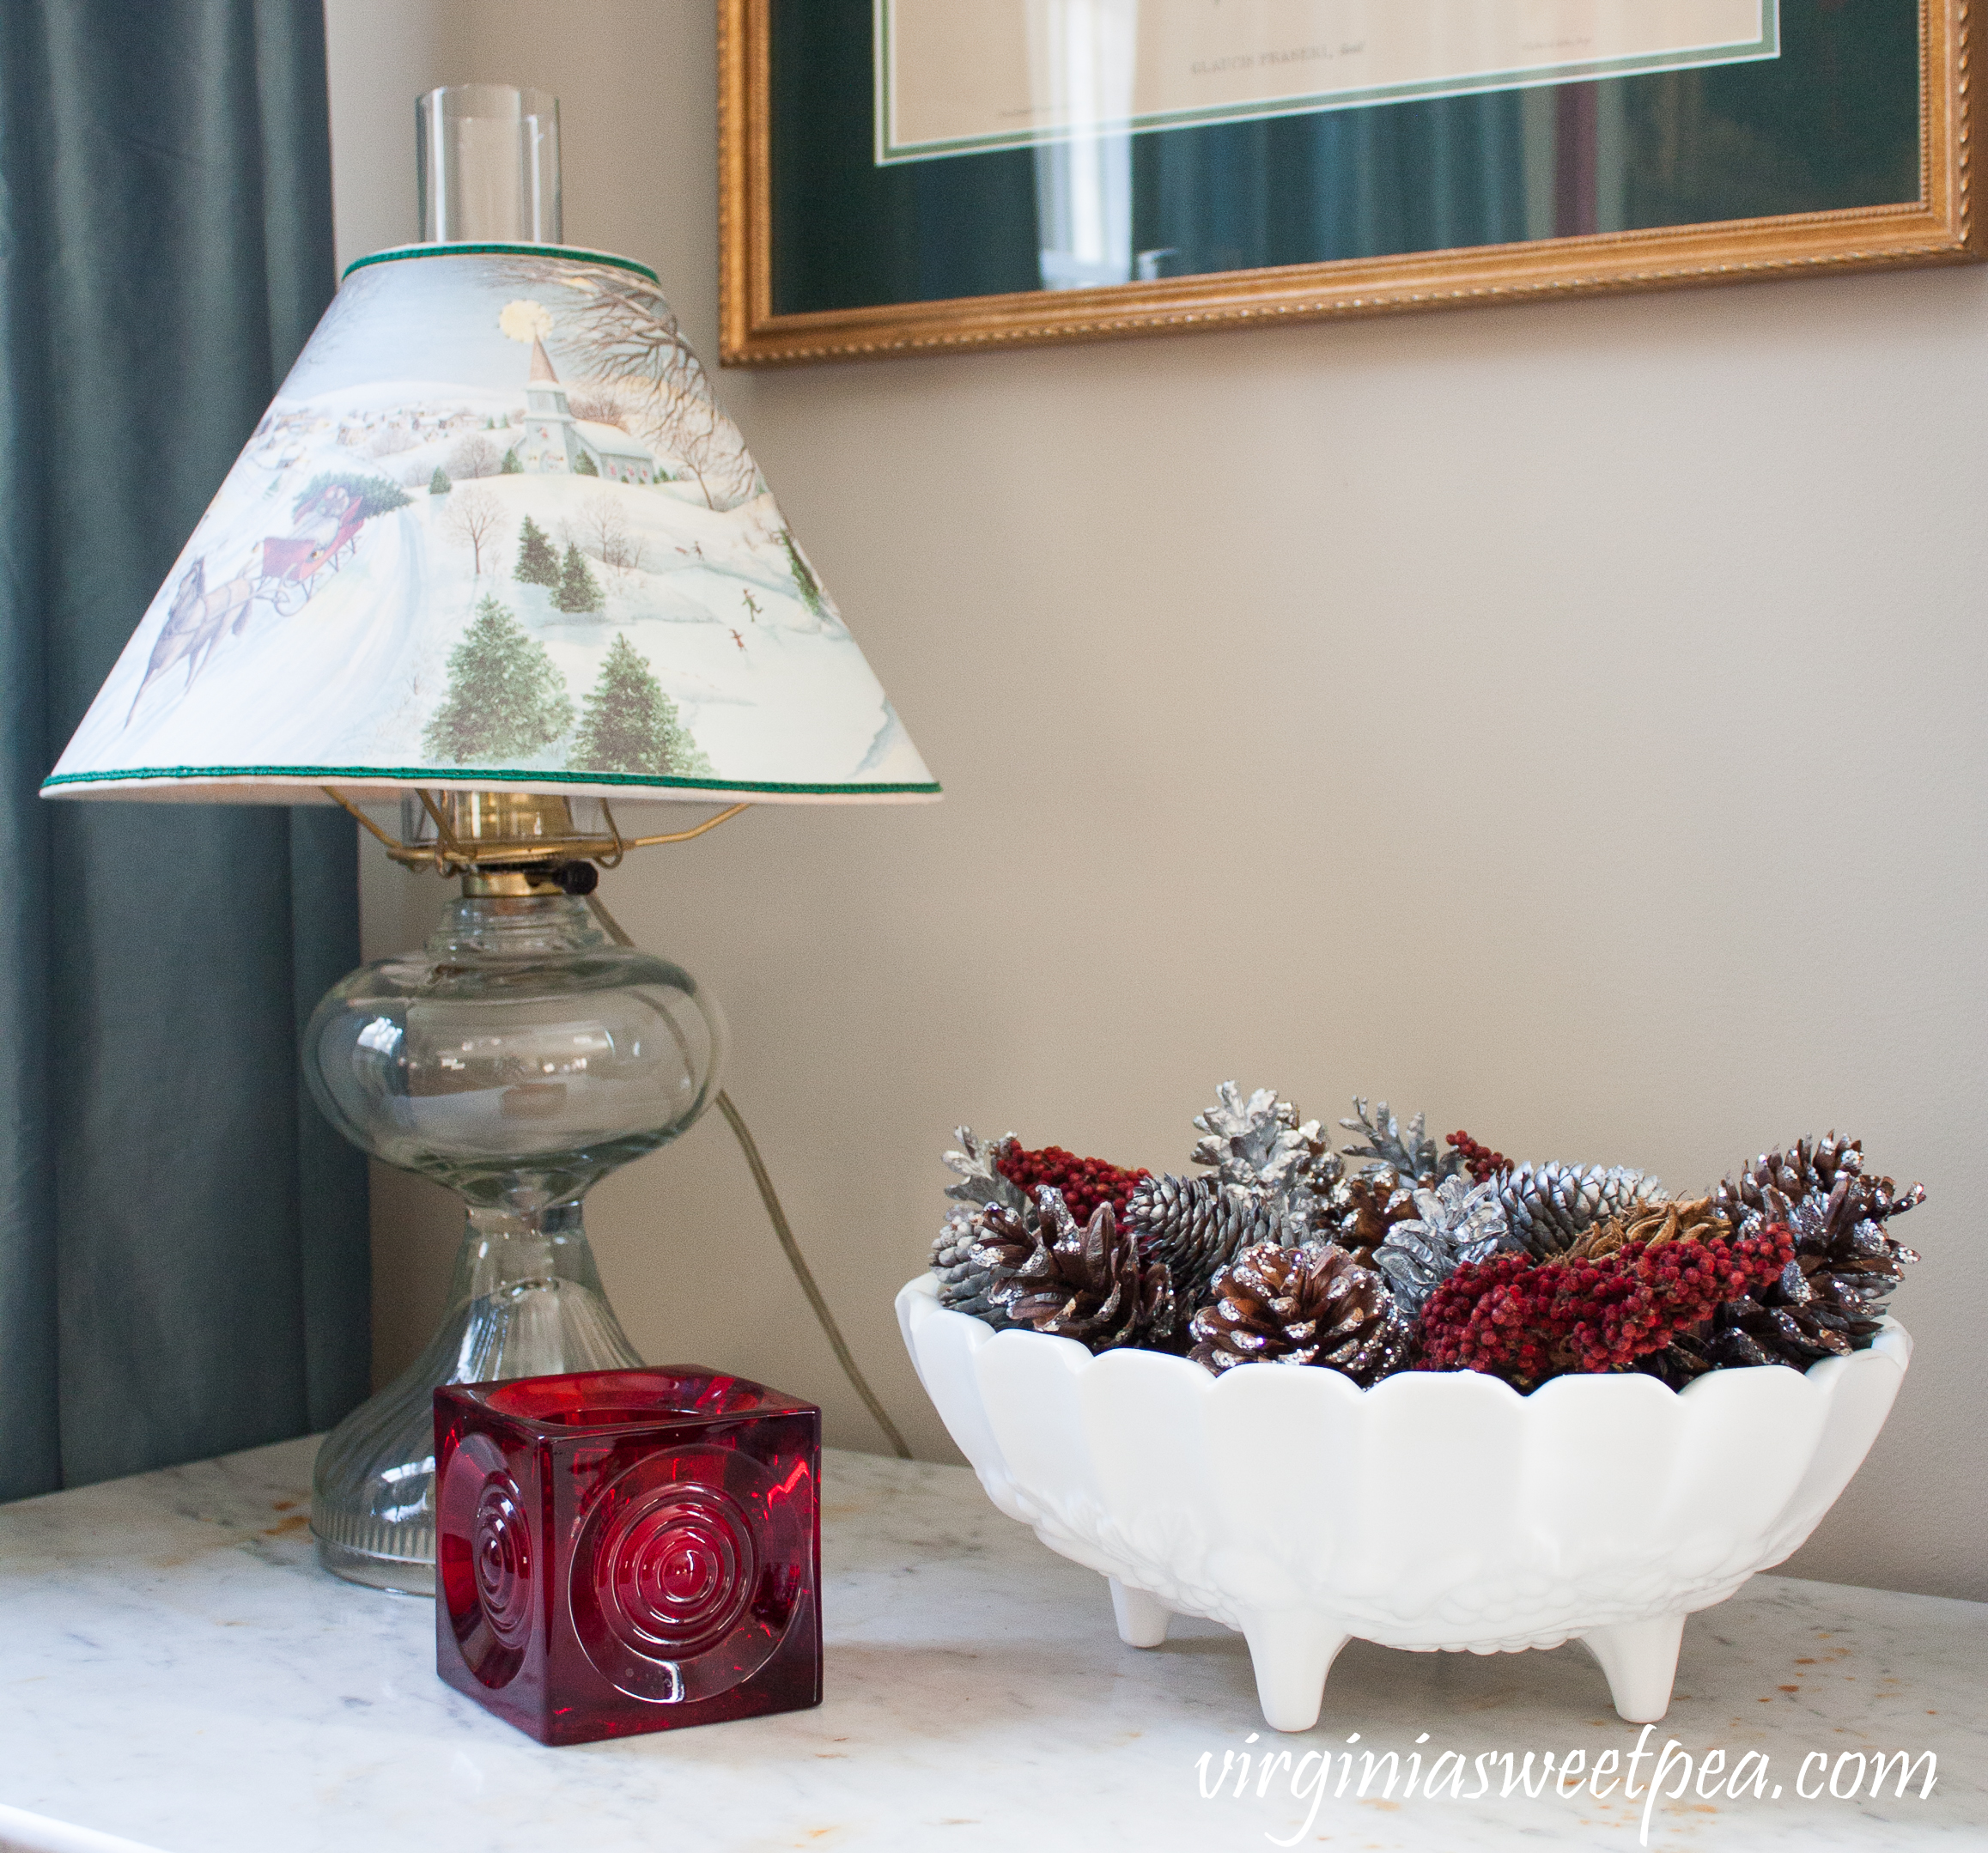 Vintage Christmas Vignette - Antique lamp with a Christmas shade, milk glass compote filled with natural items, and a Blenko candle holder.